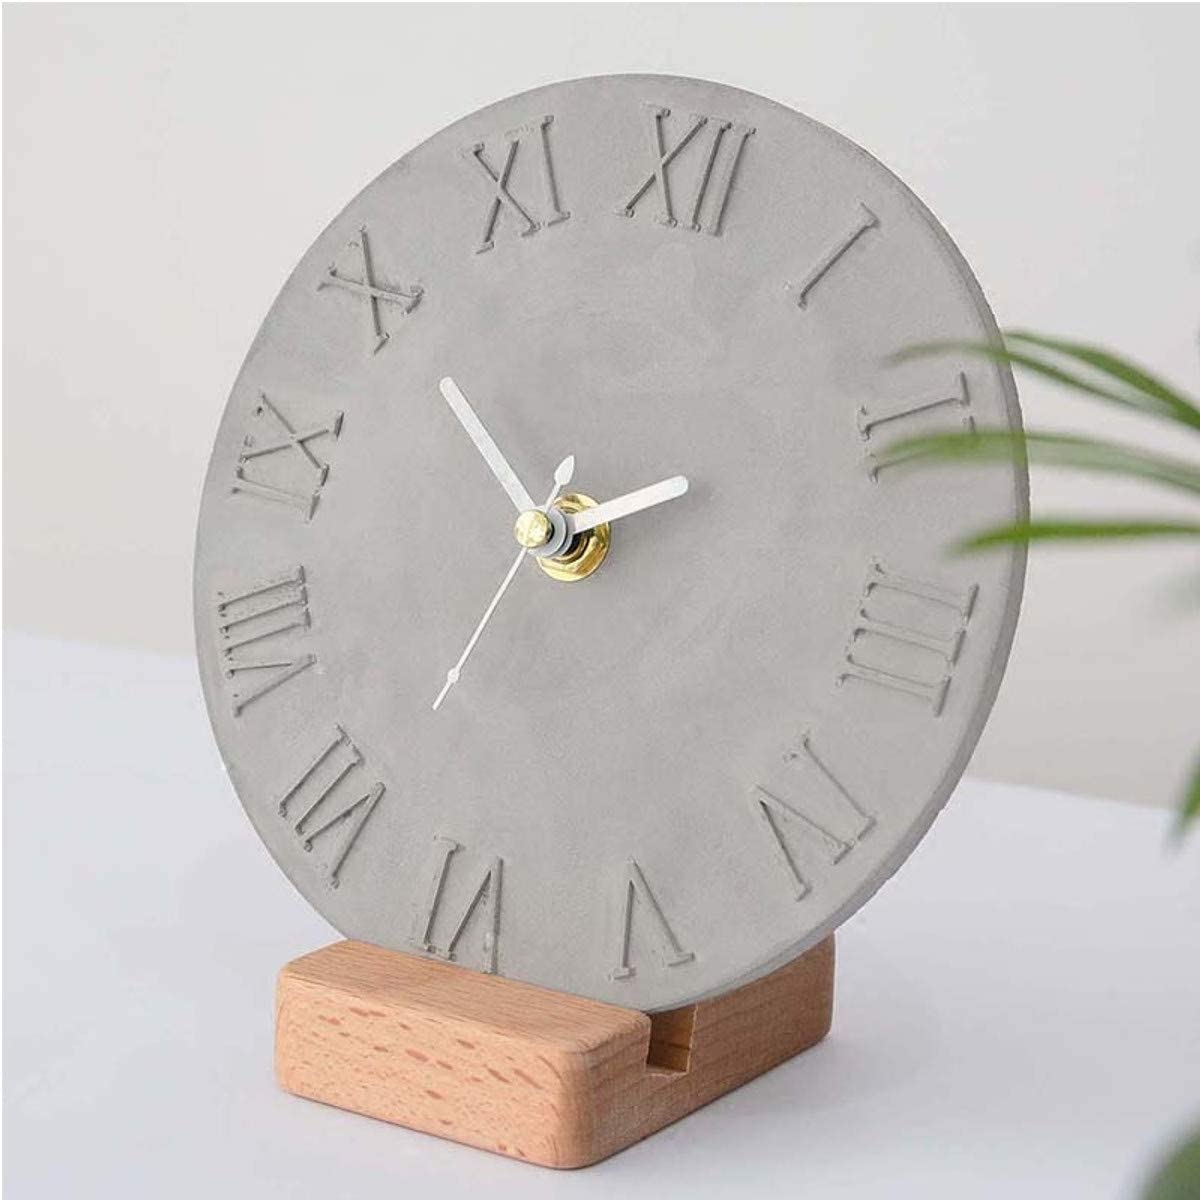 ZUINIUBI Cement Concrete Silicone Mould DIY Craft Clock Making Clay Plaster Mould Handmade for Home Decoration